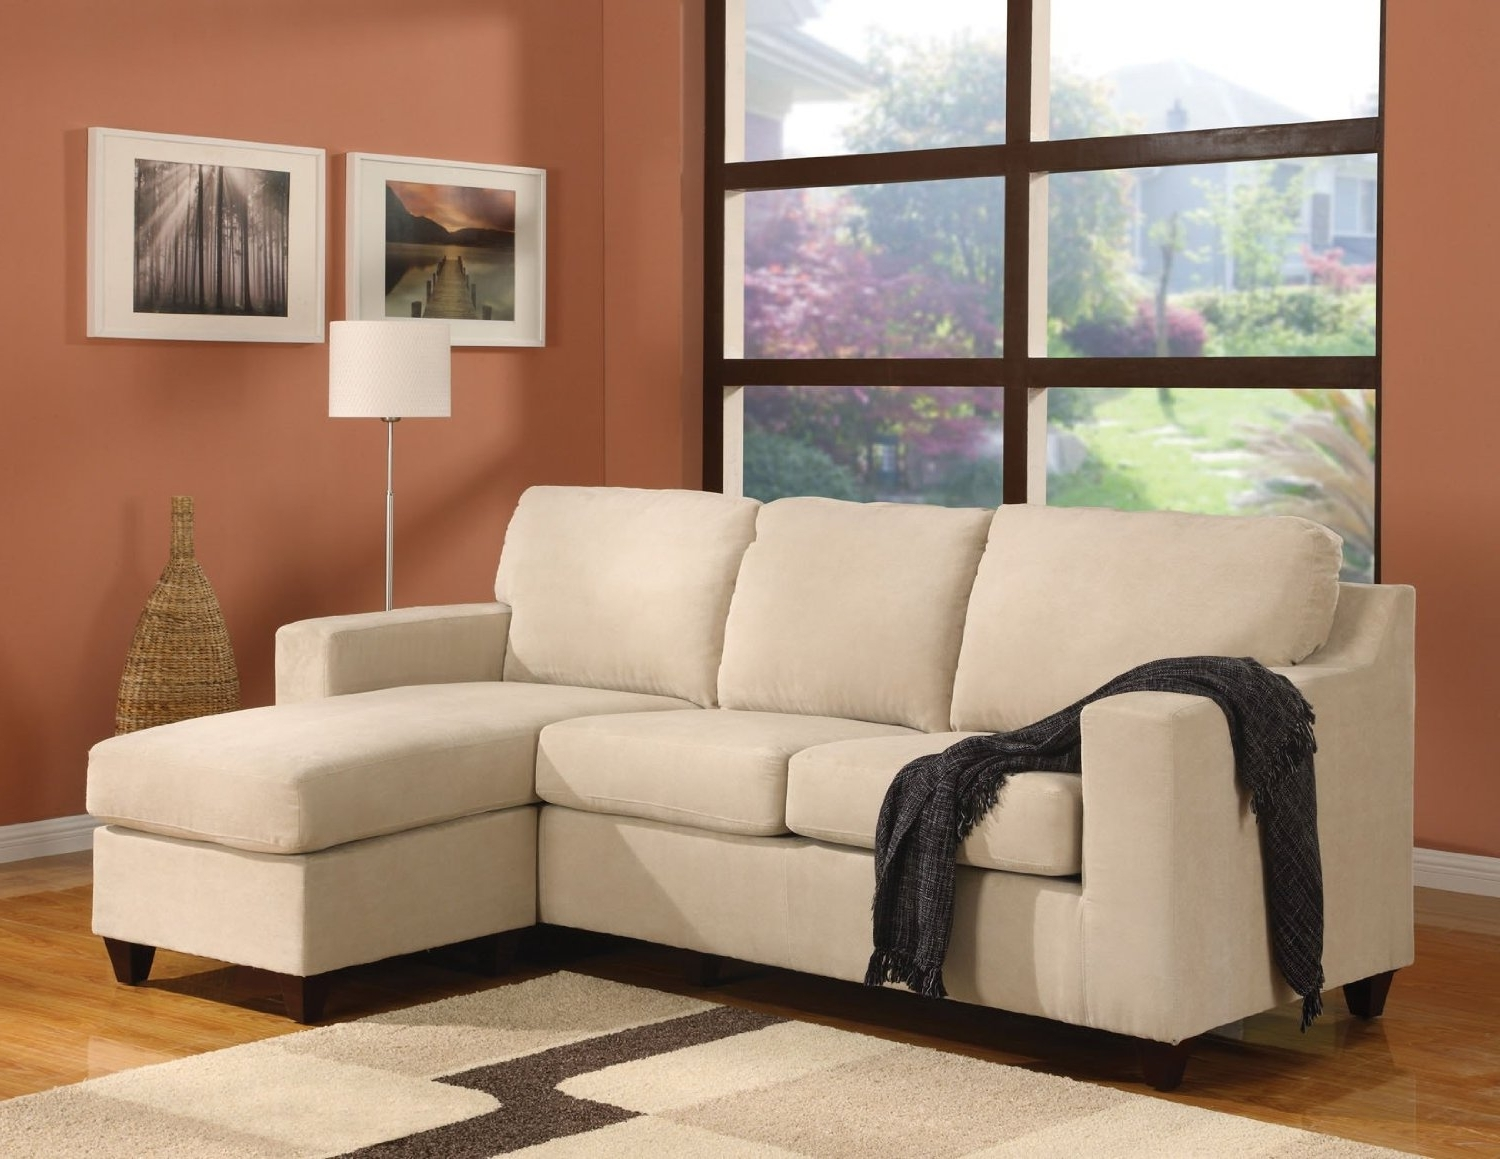 Small Sectional Sofas With Chaise Lounge With Widely Used Awesome Small Sectional Sofa With Chaise Lounge Chairs (View 2 of 15)